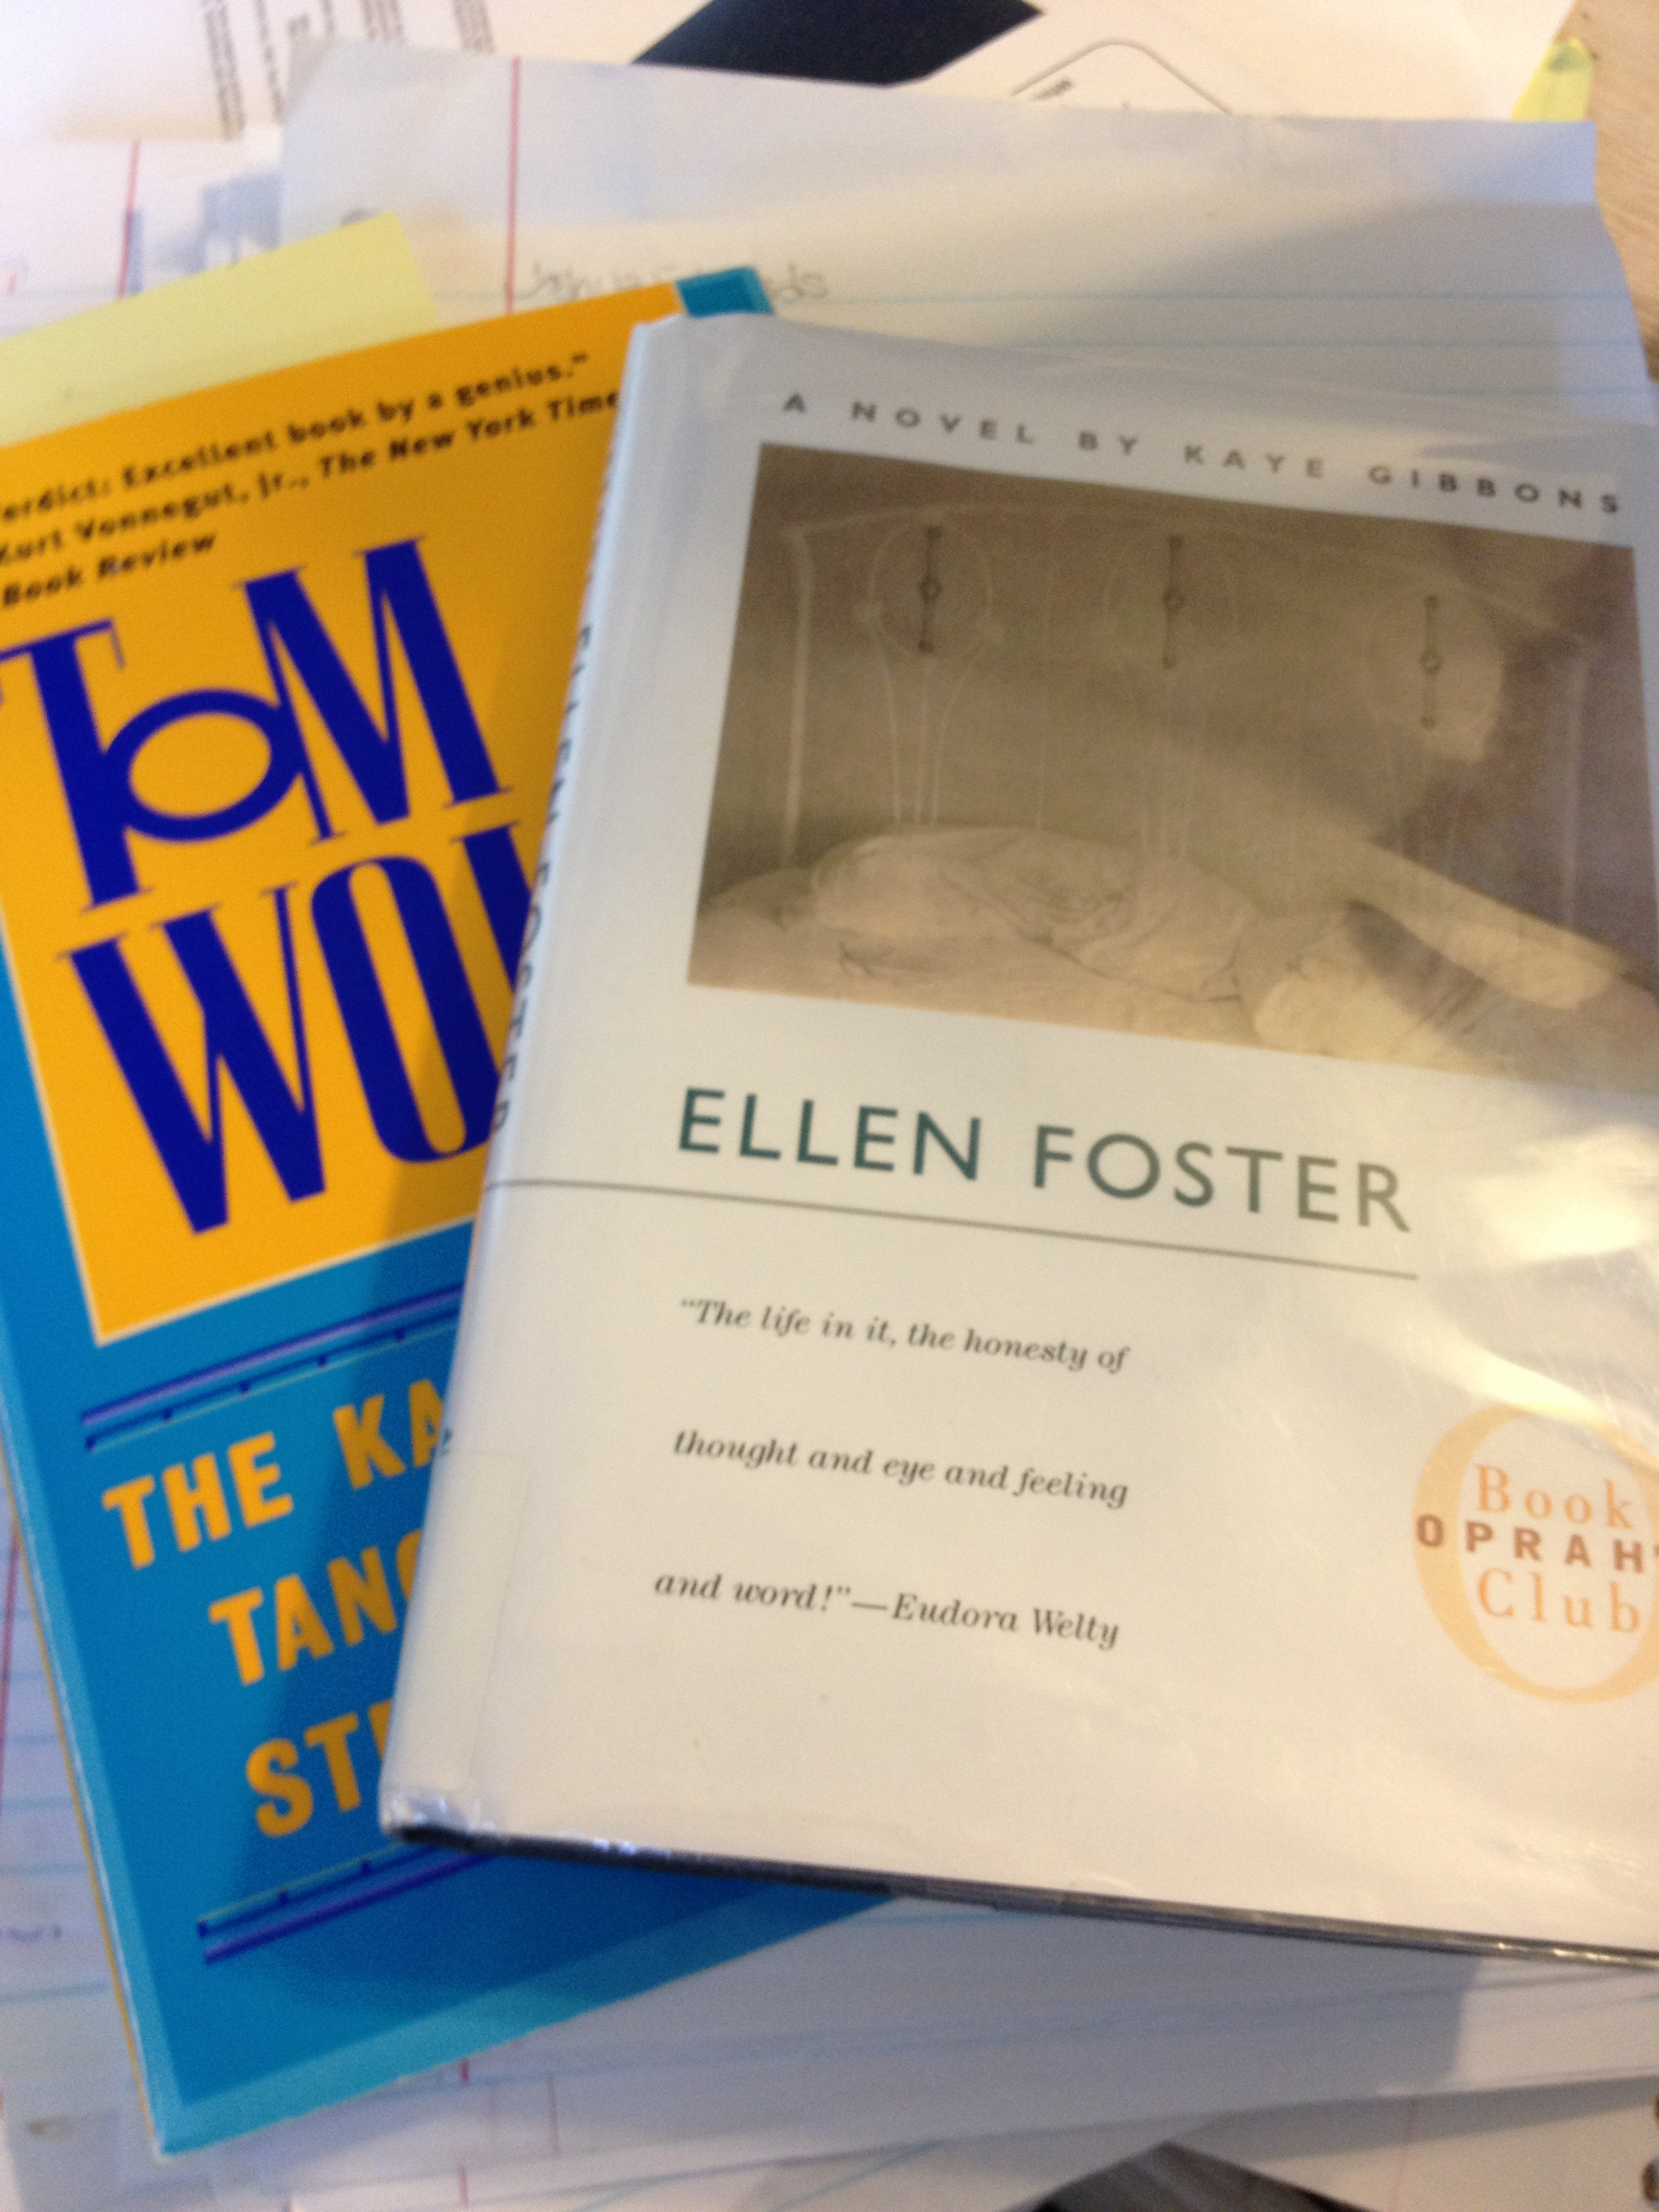 ellen foster book essays This book will make you laugh hotessaysblogspotcom provides free sample essays and essay examples you can order a custom essay on ellen foster now posted.